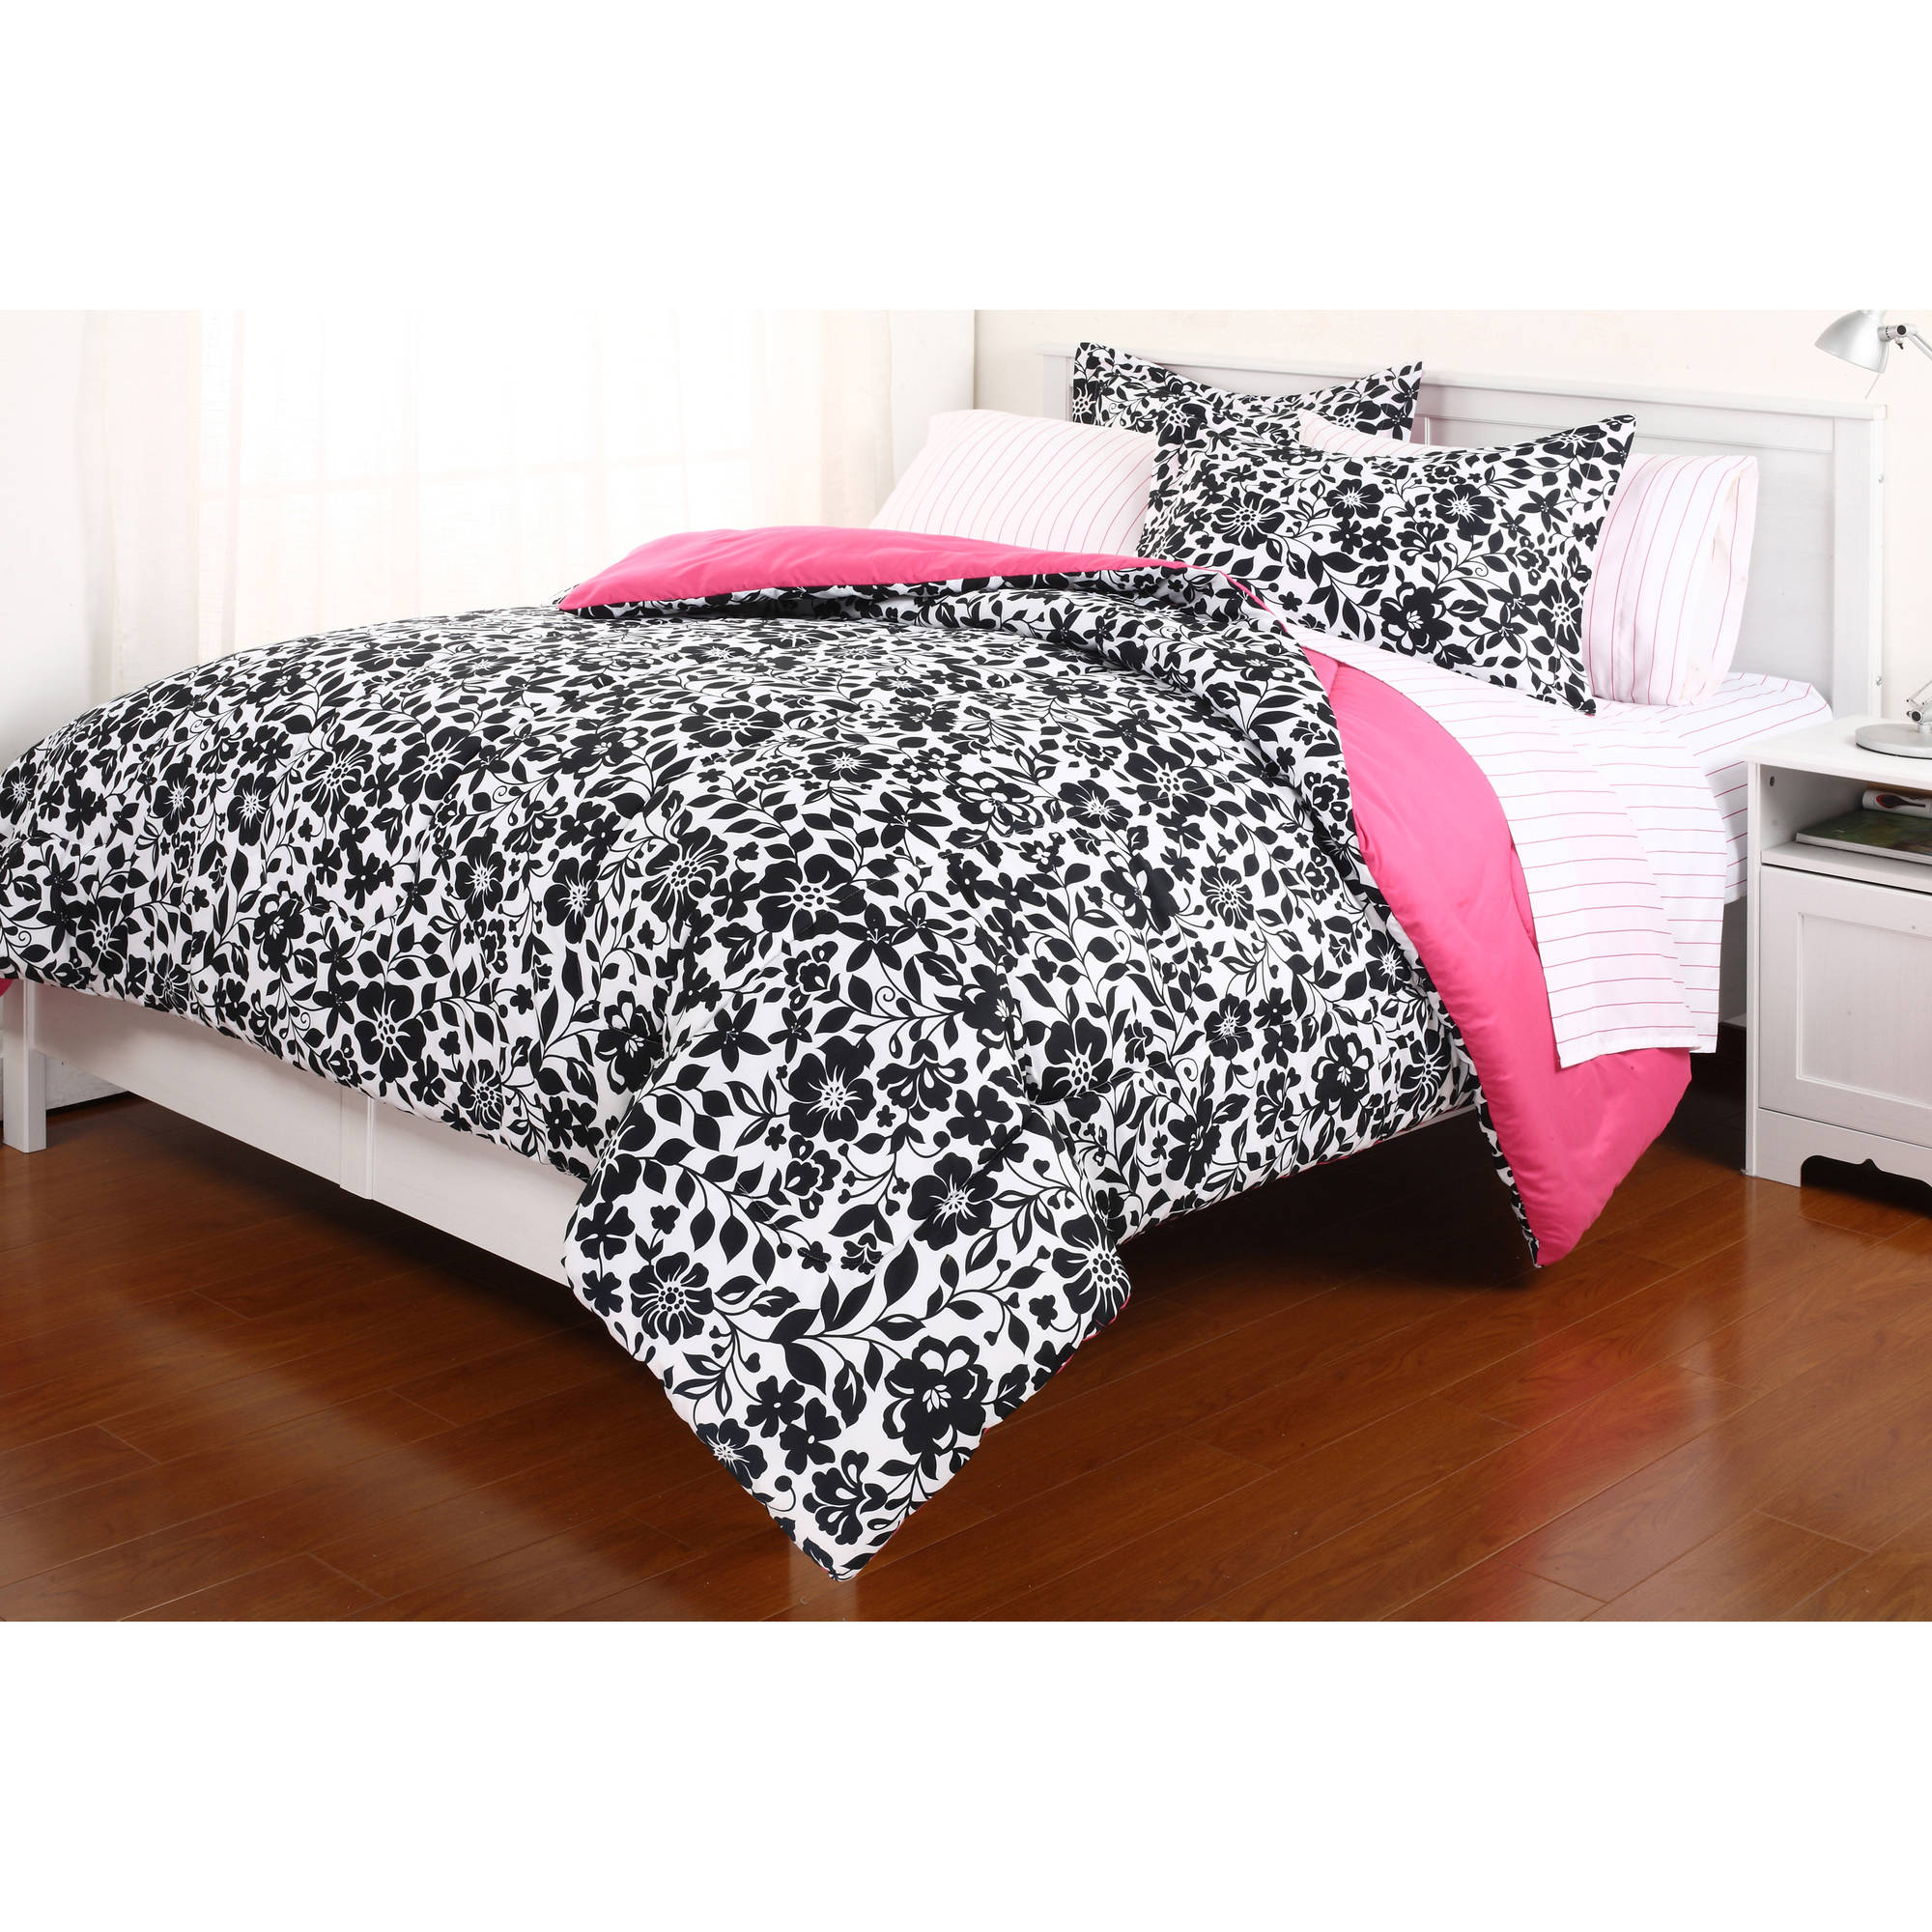 Piece Rochelle Pinched Pleat Bed in a Bag Set Walmart